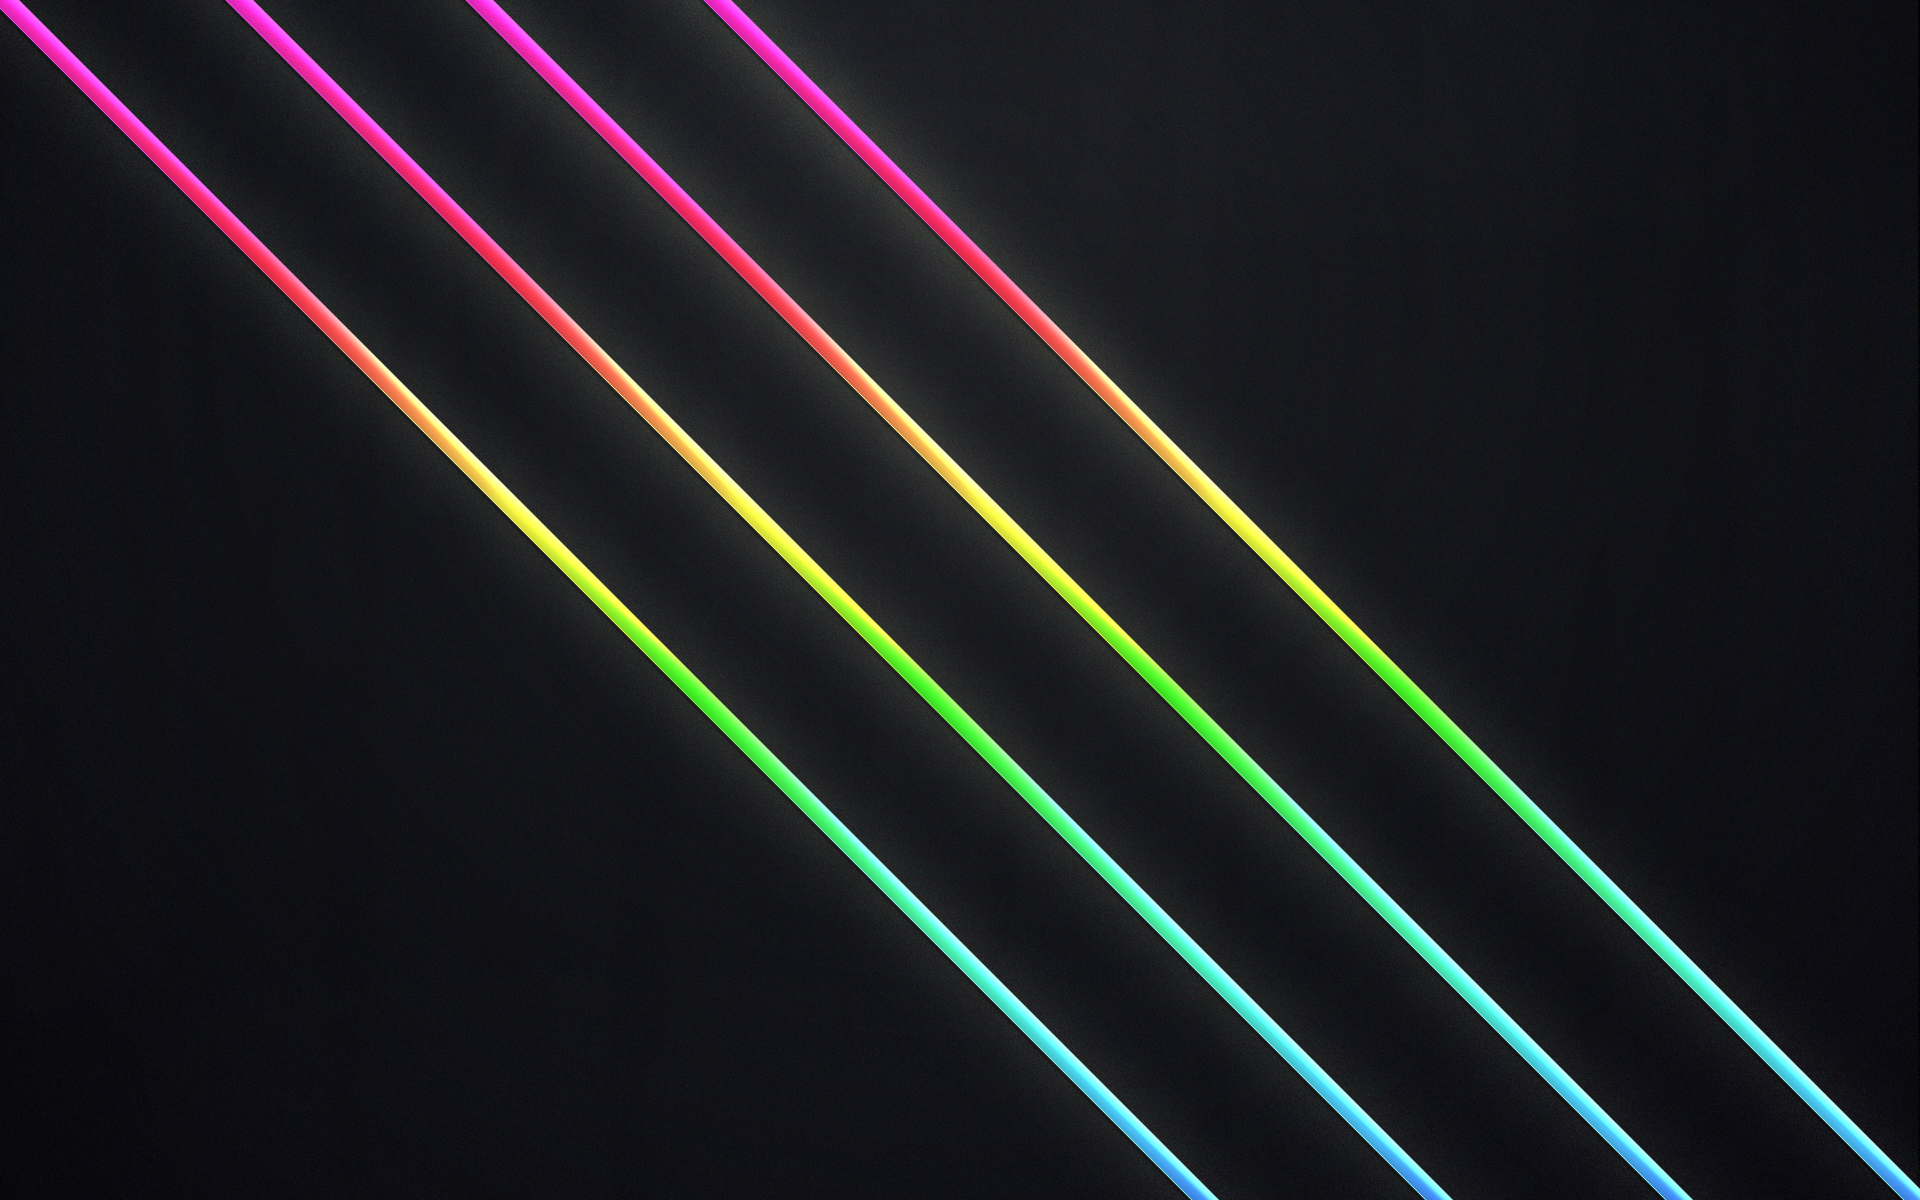 Awesome Neon Computer Wallpapers Desktop Backgrounds 19 MB ID 1920x1200